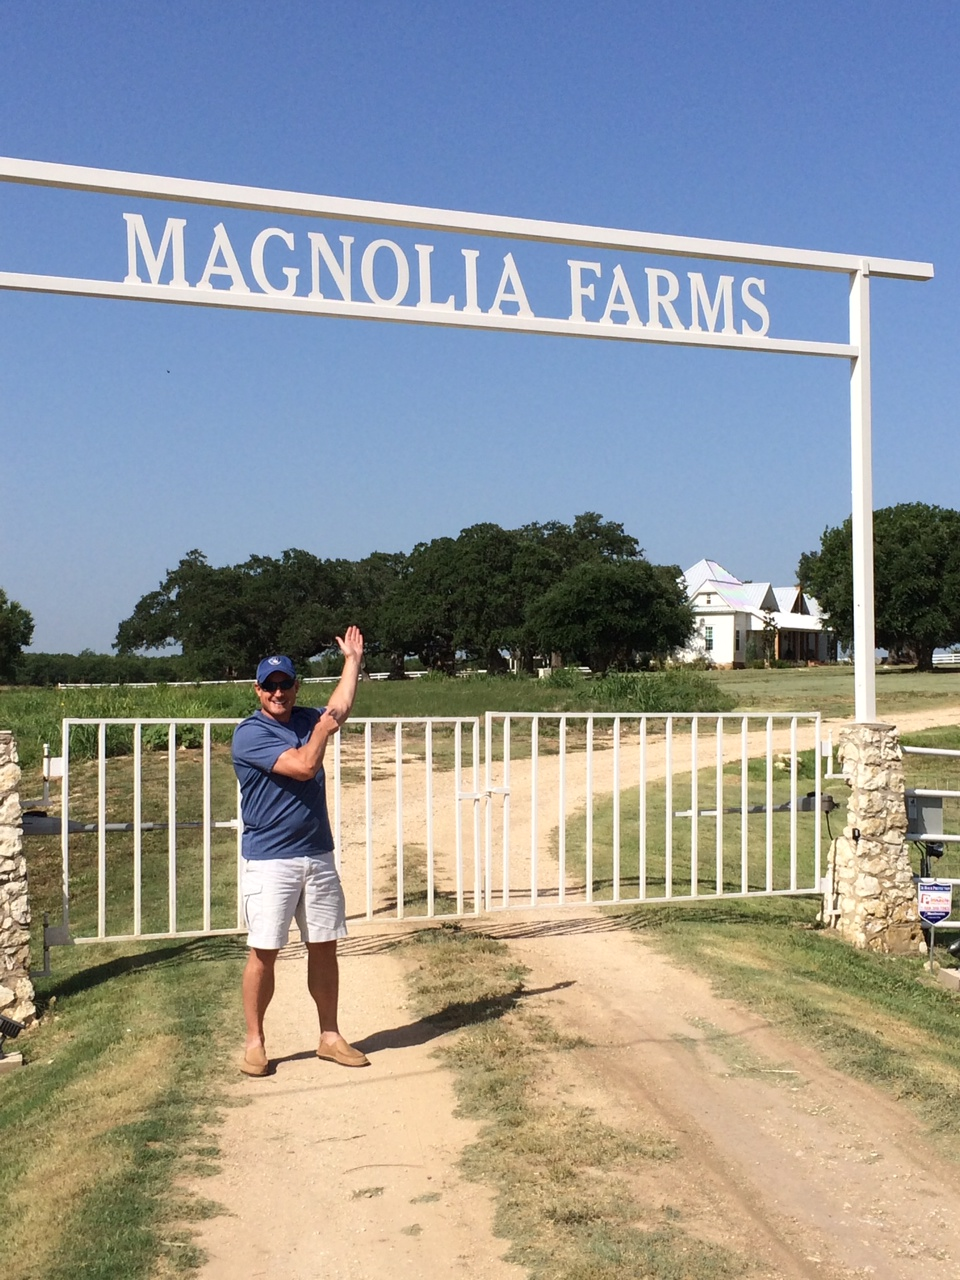 magnolia farms waco tx fixer real parent guide 31213